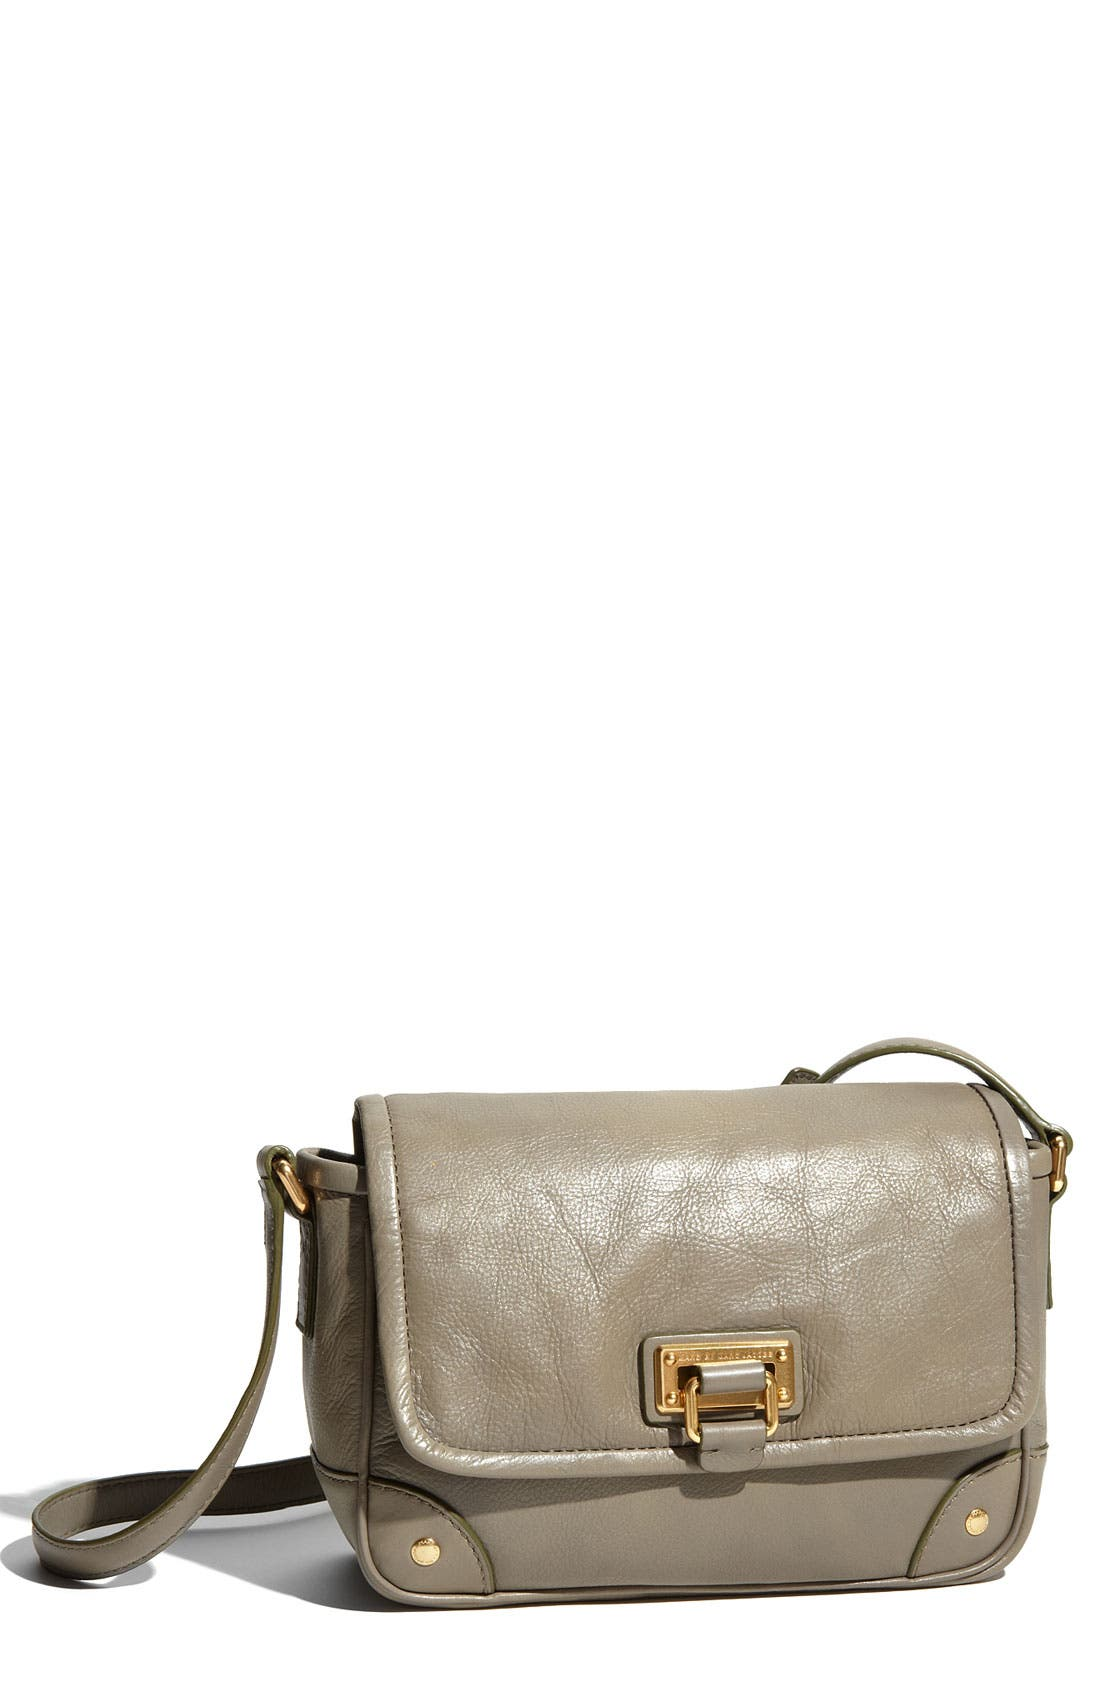 Alternate Image 1 Selected - MARC BY MARC JACOBS 'Lady Pouchette' Crossbody Bag